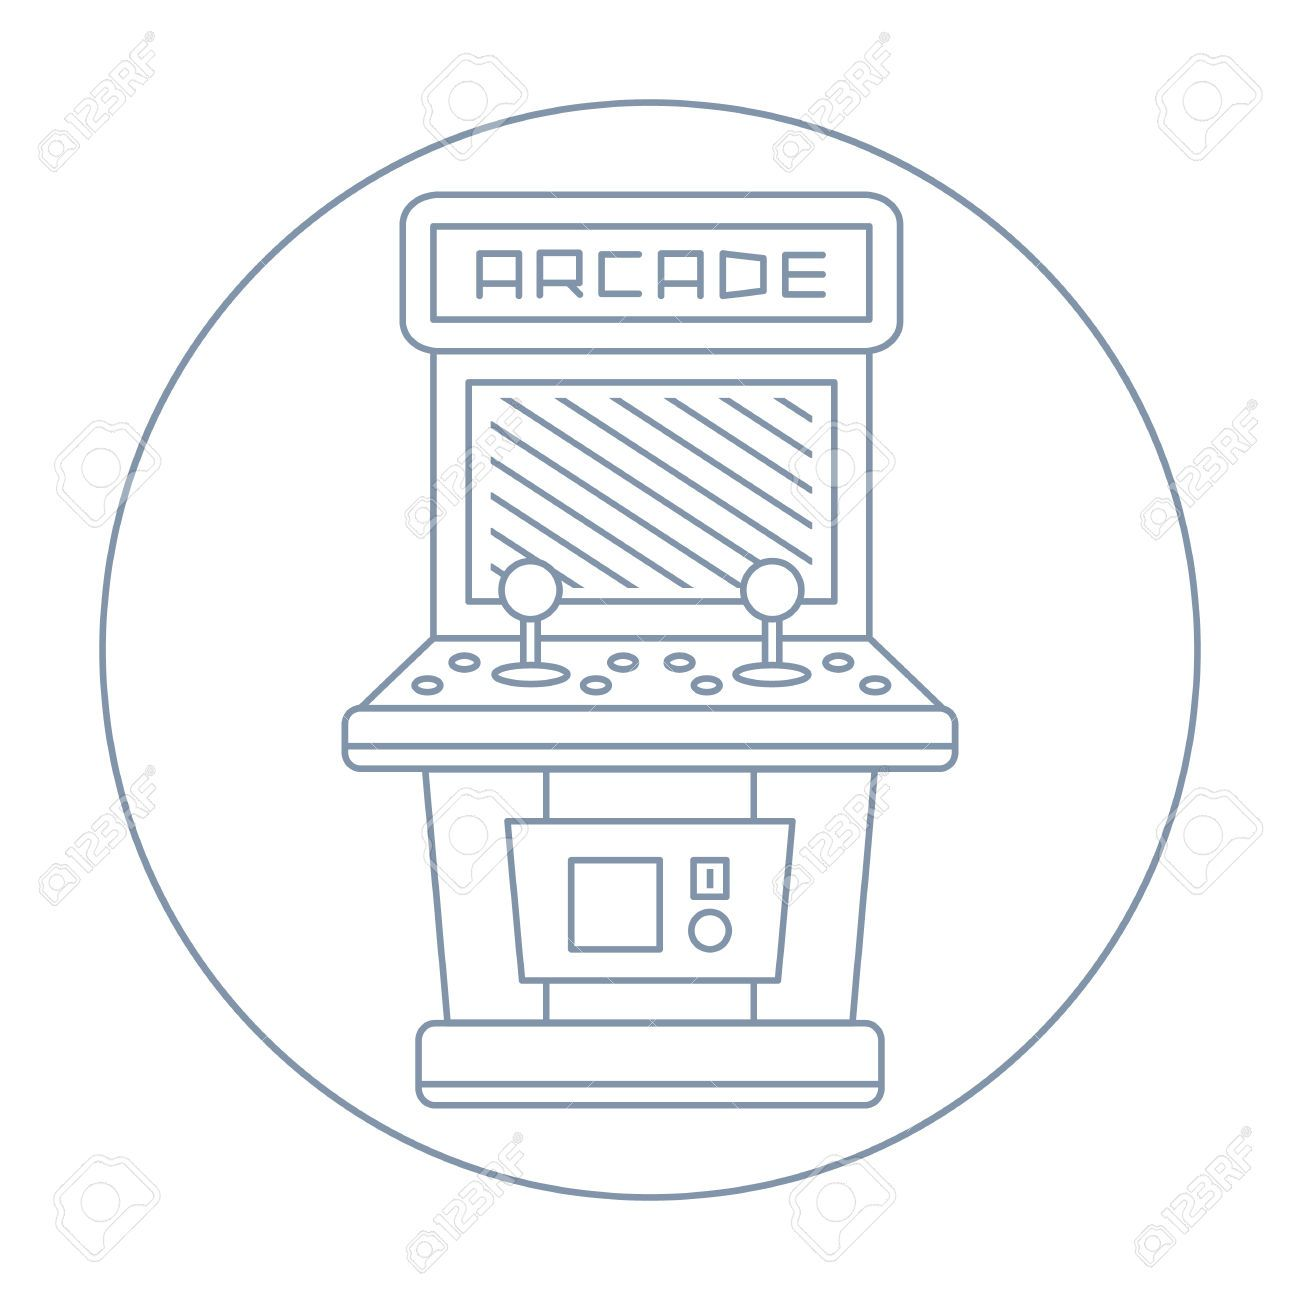 Arcade clipart black and white. Game icon pinterest searching